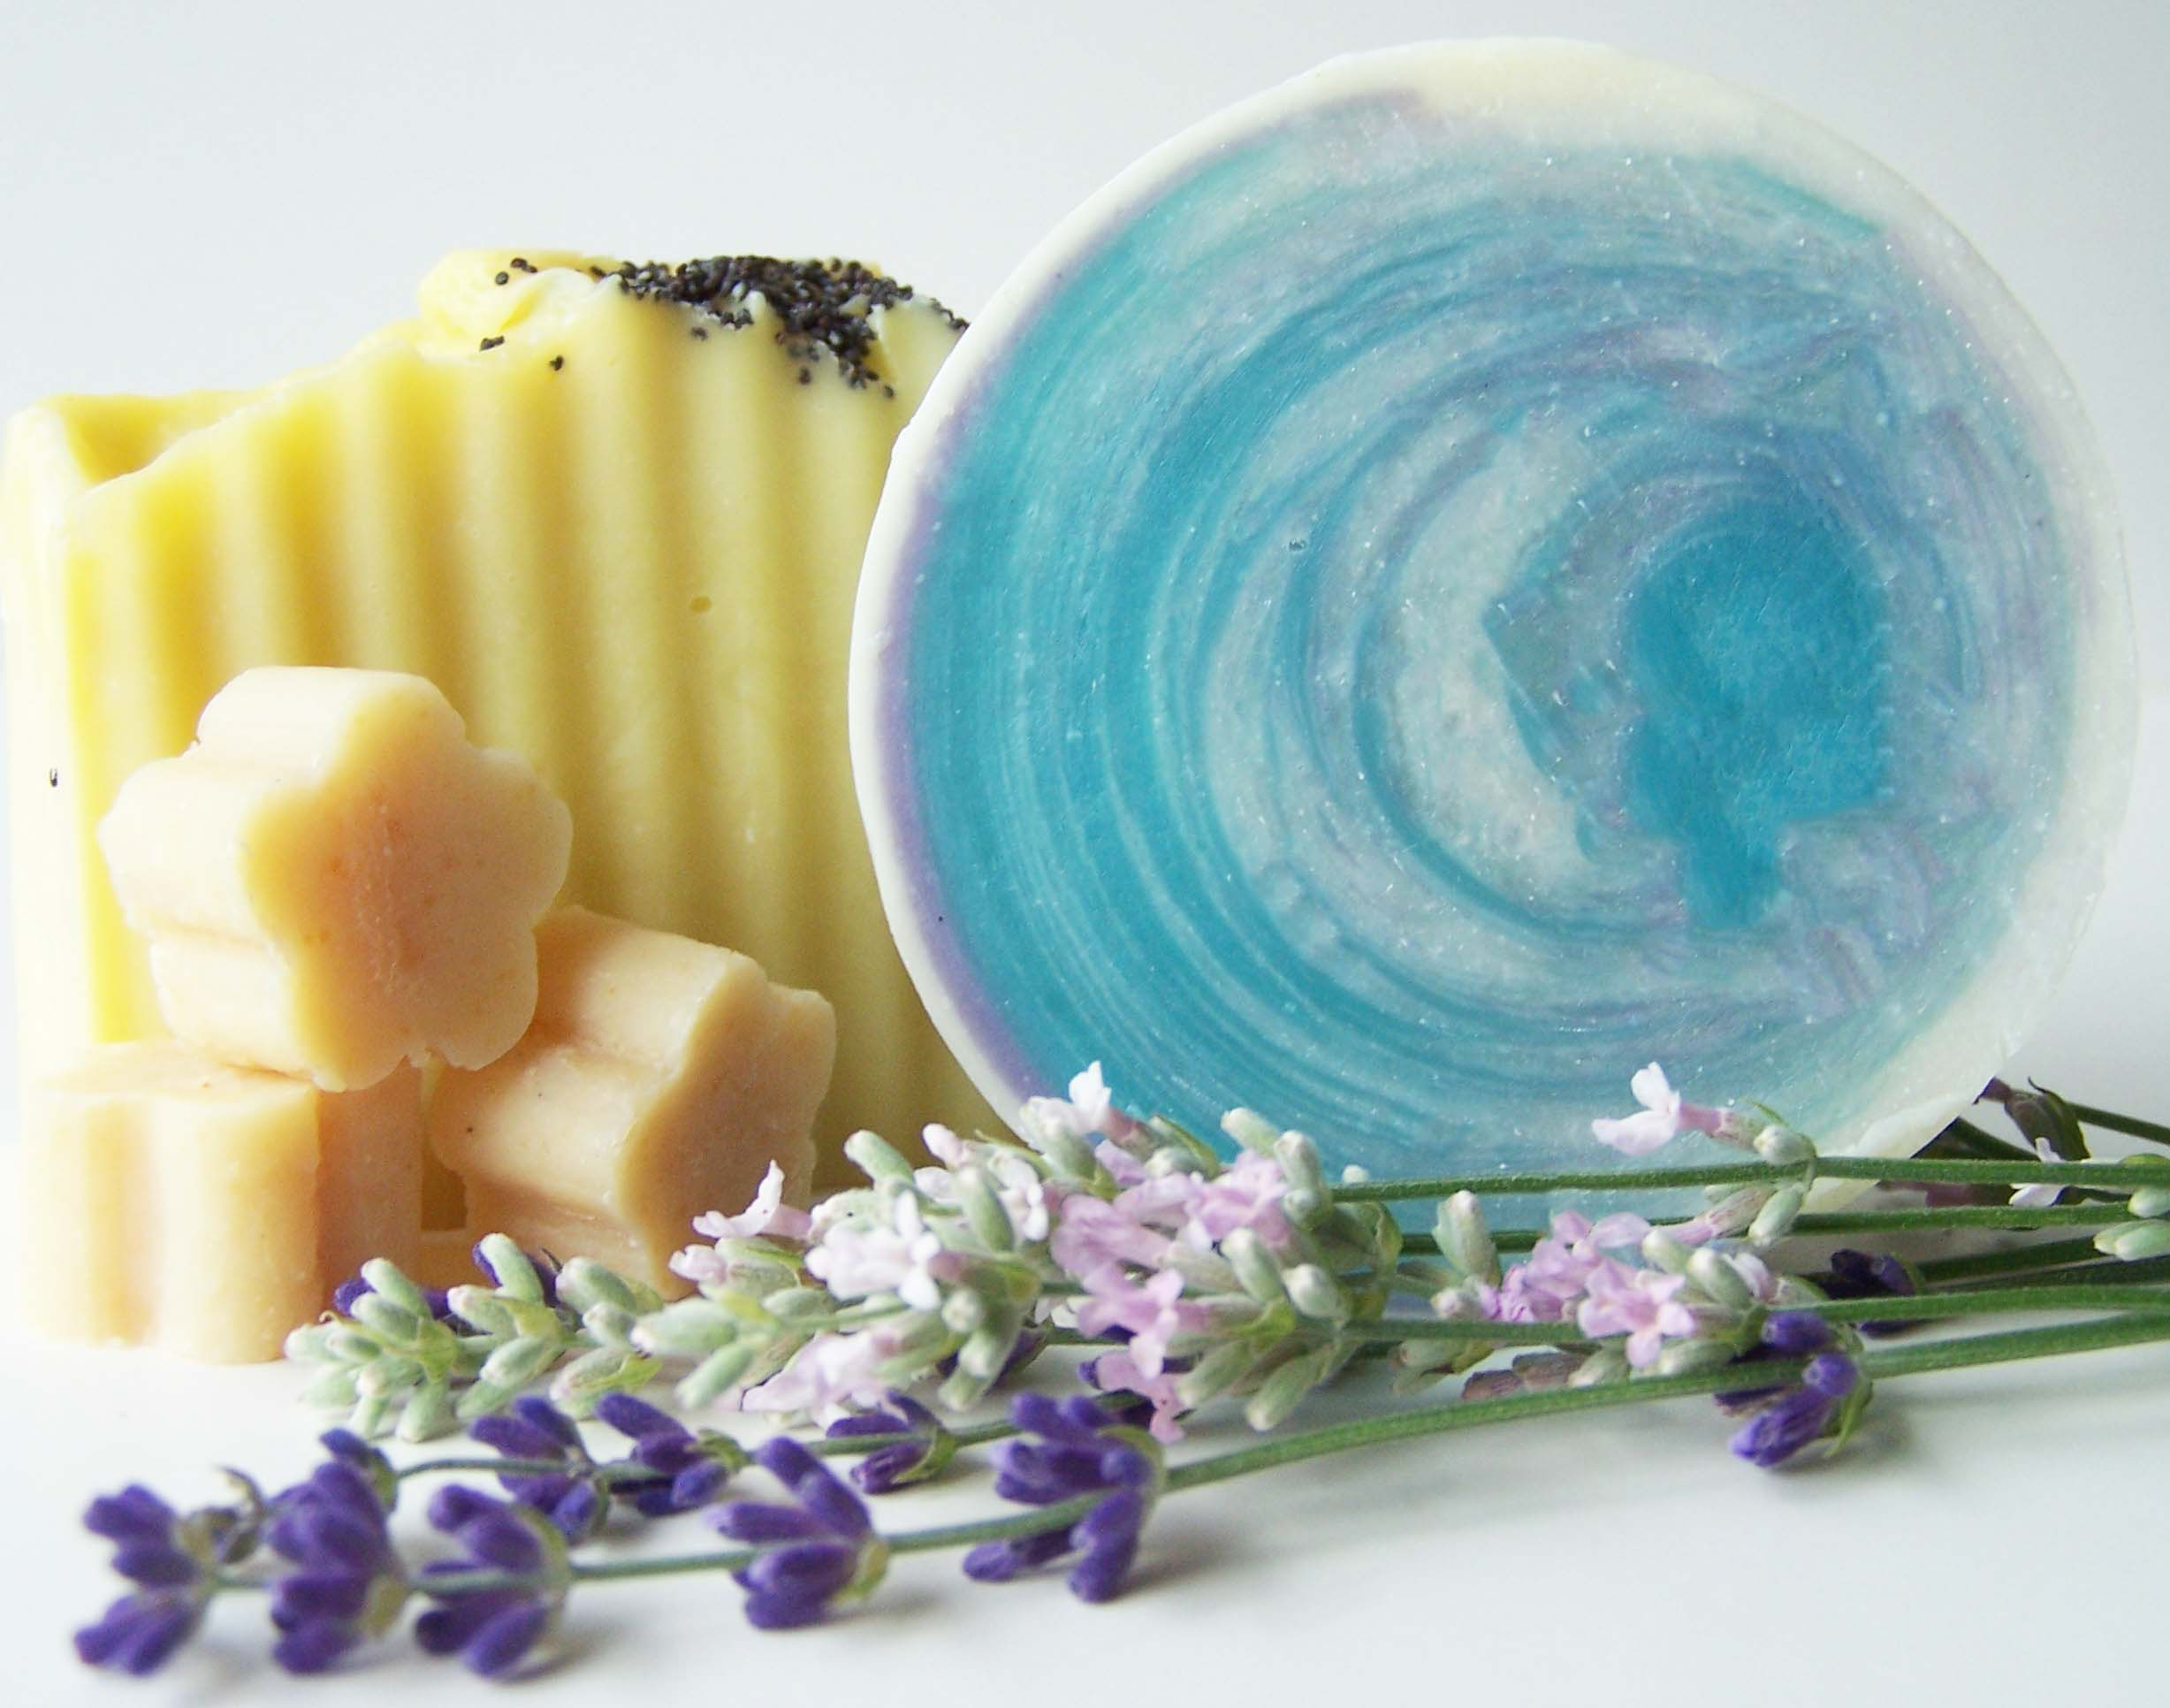 Vermont lavender sells sugars, teas, jelly and handmade soaps.